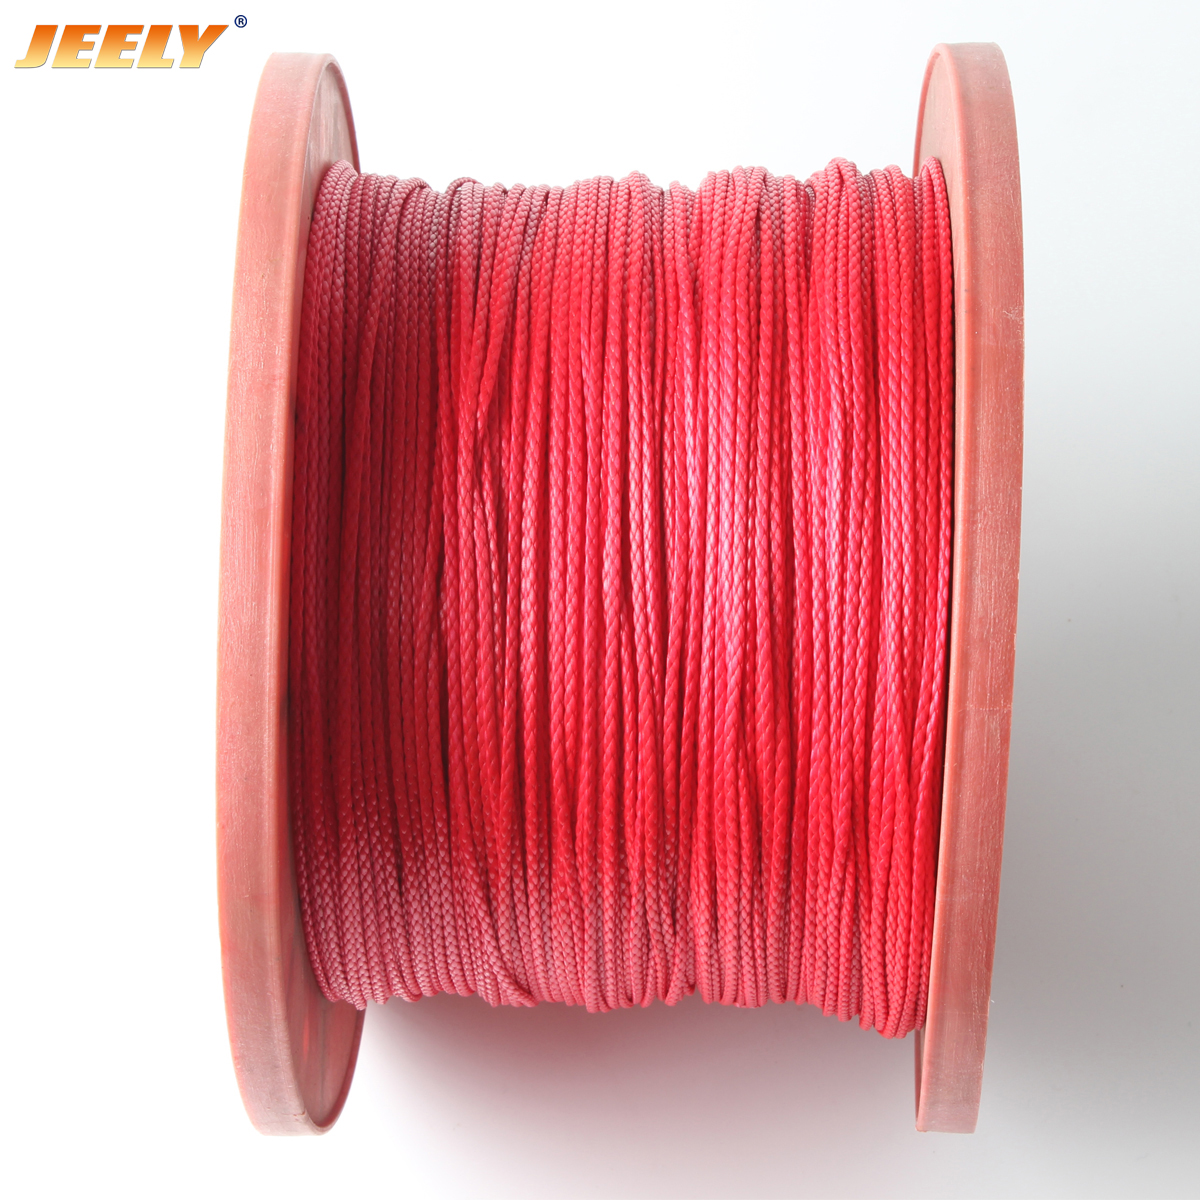 Uhmwpe fiber braided fishing line 0.5mm 12 strands